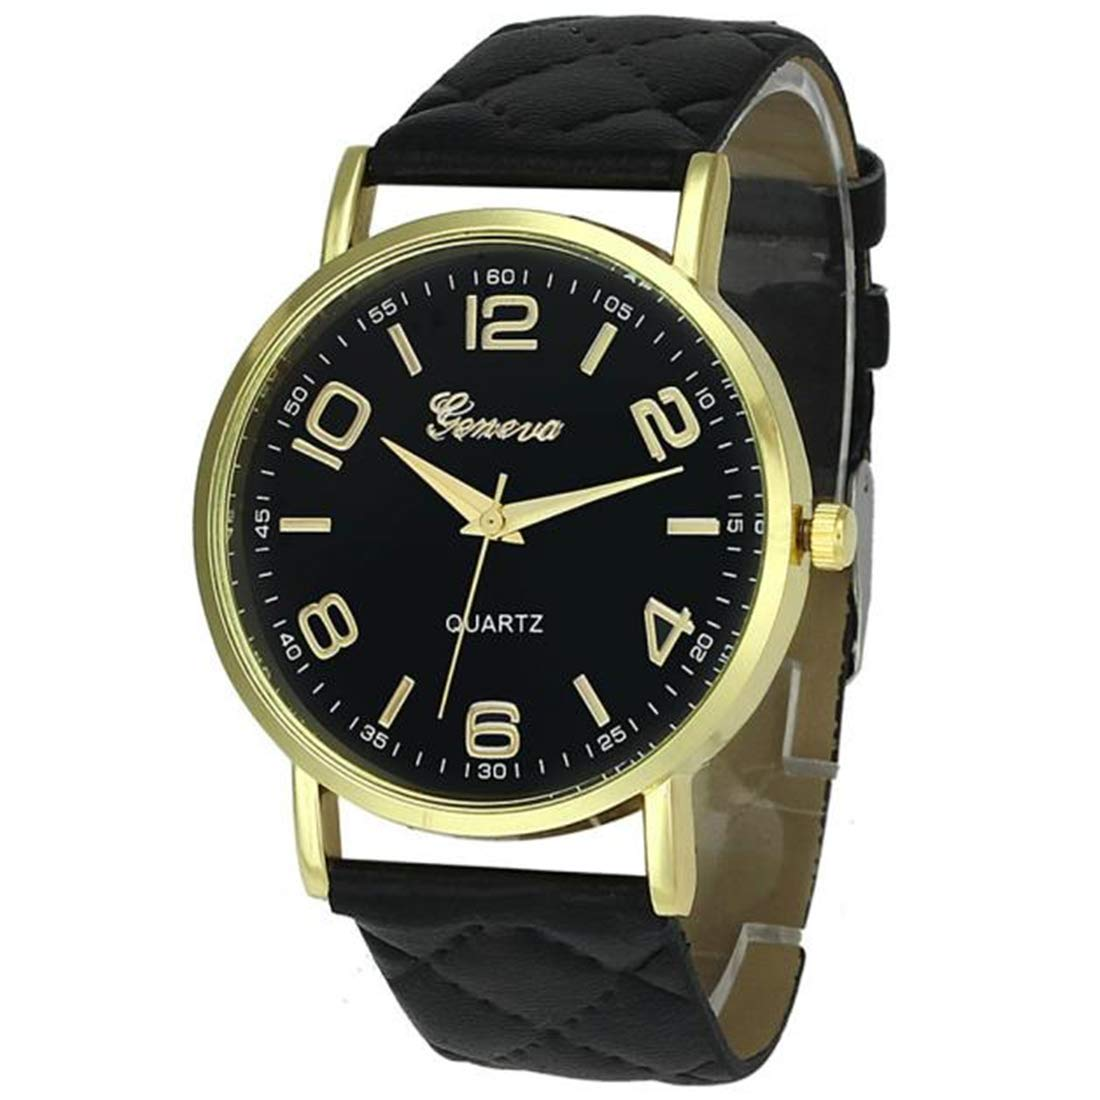 Hot Sale Gibobby Mens Watches,Luxury Casual Army Military Sport Date Quartz Analog Wristwatch Chronograph Stainless Steel Belt Business Wrist Watches